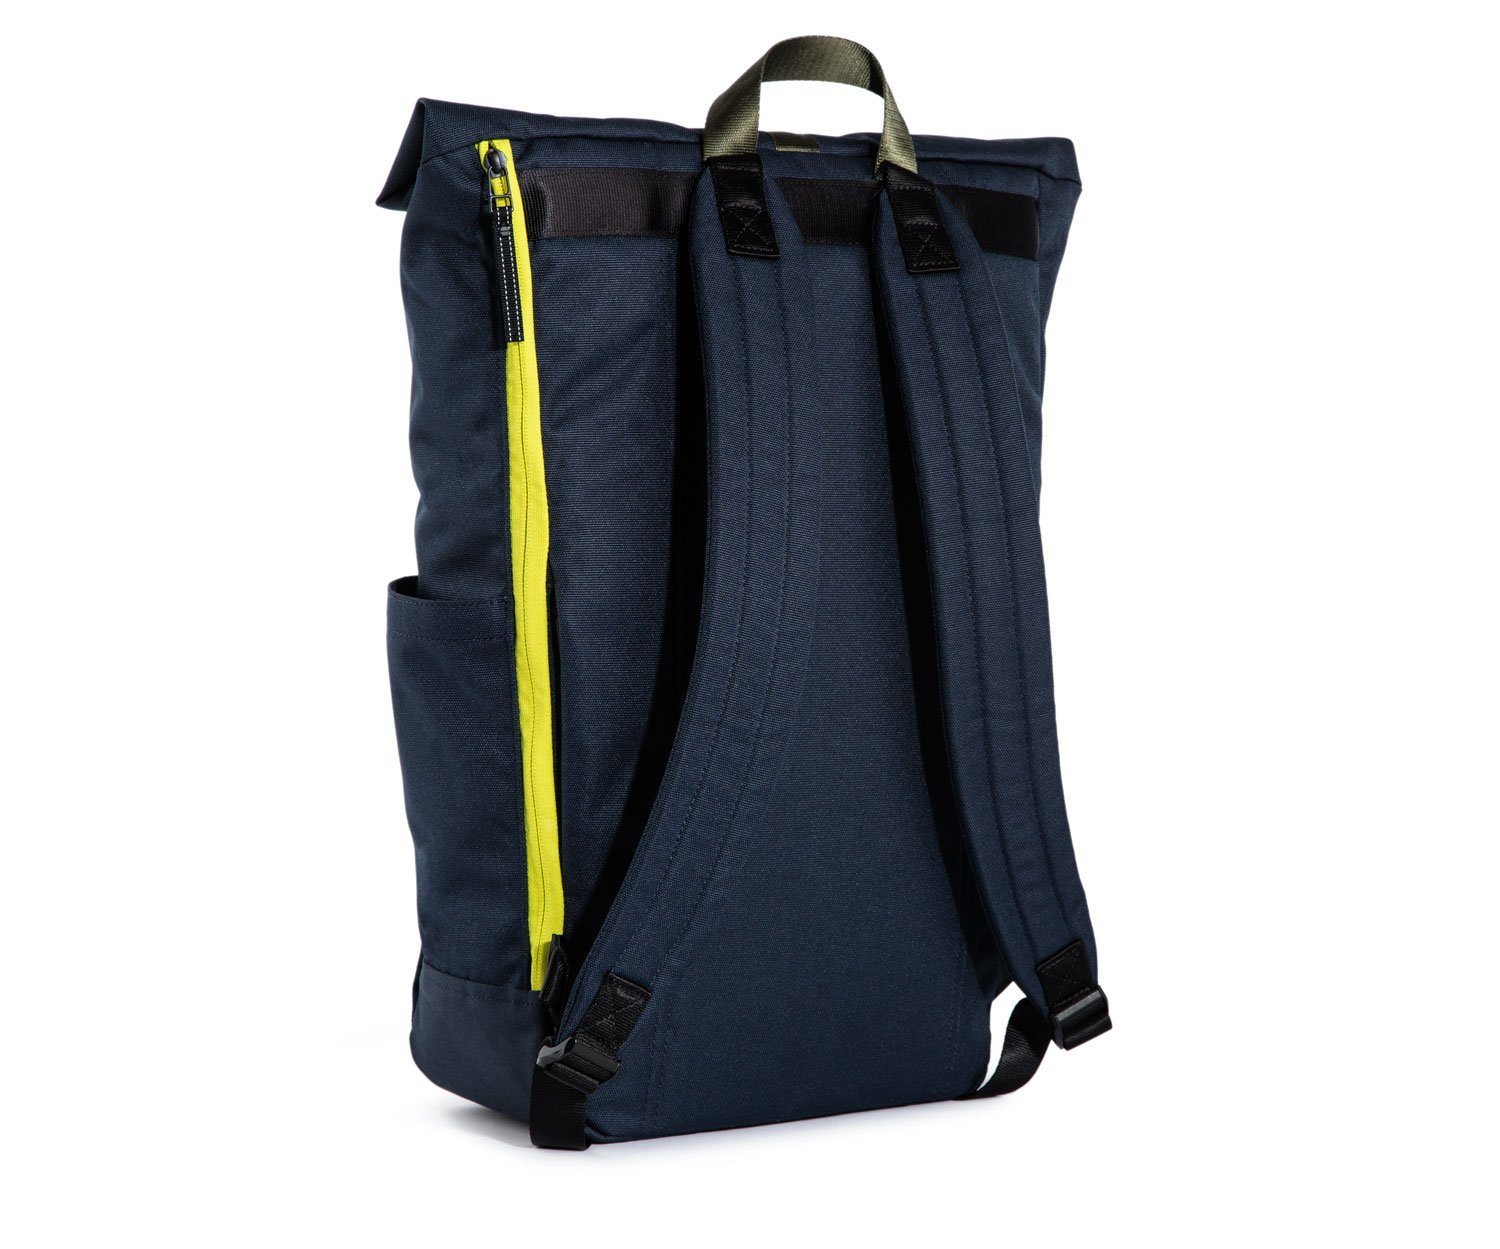 Timbuk2 Tuck Pack, Nautical/Bixi, One Size by Timbuk2 (Image #2)